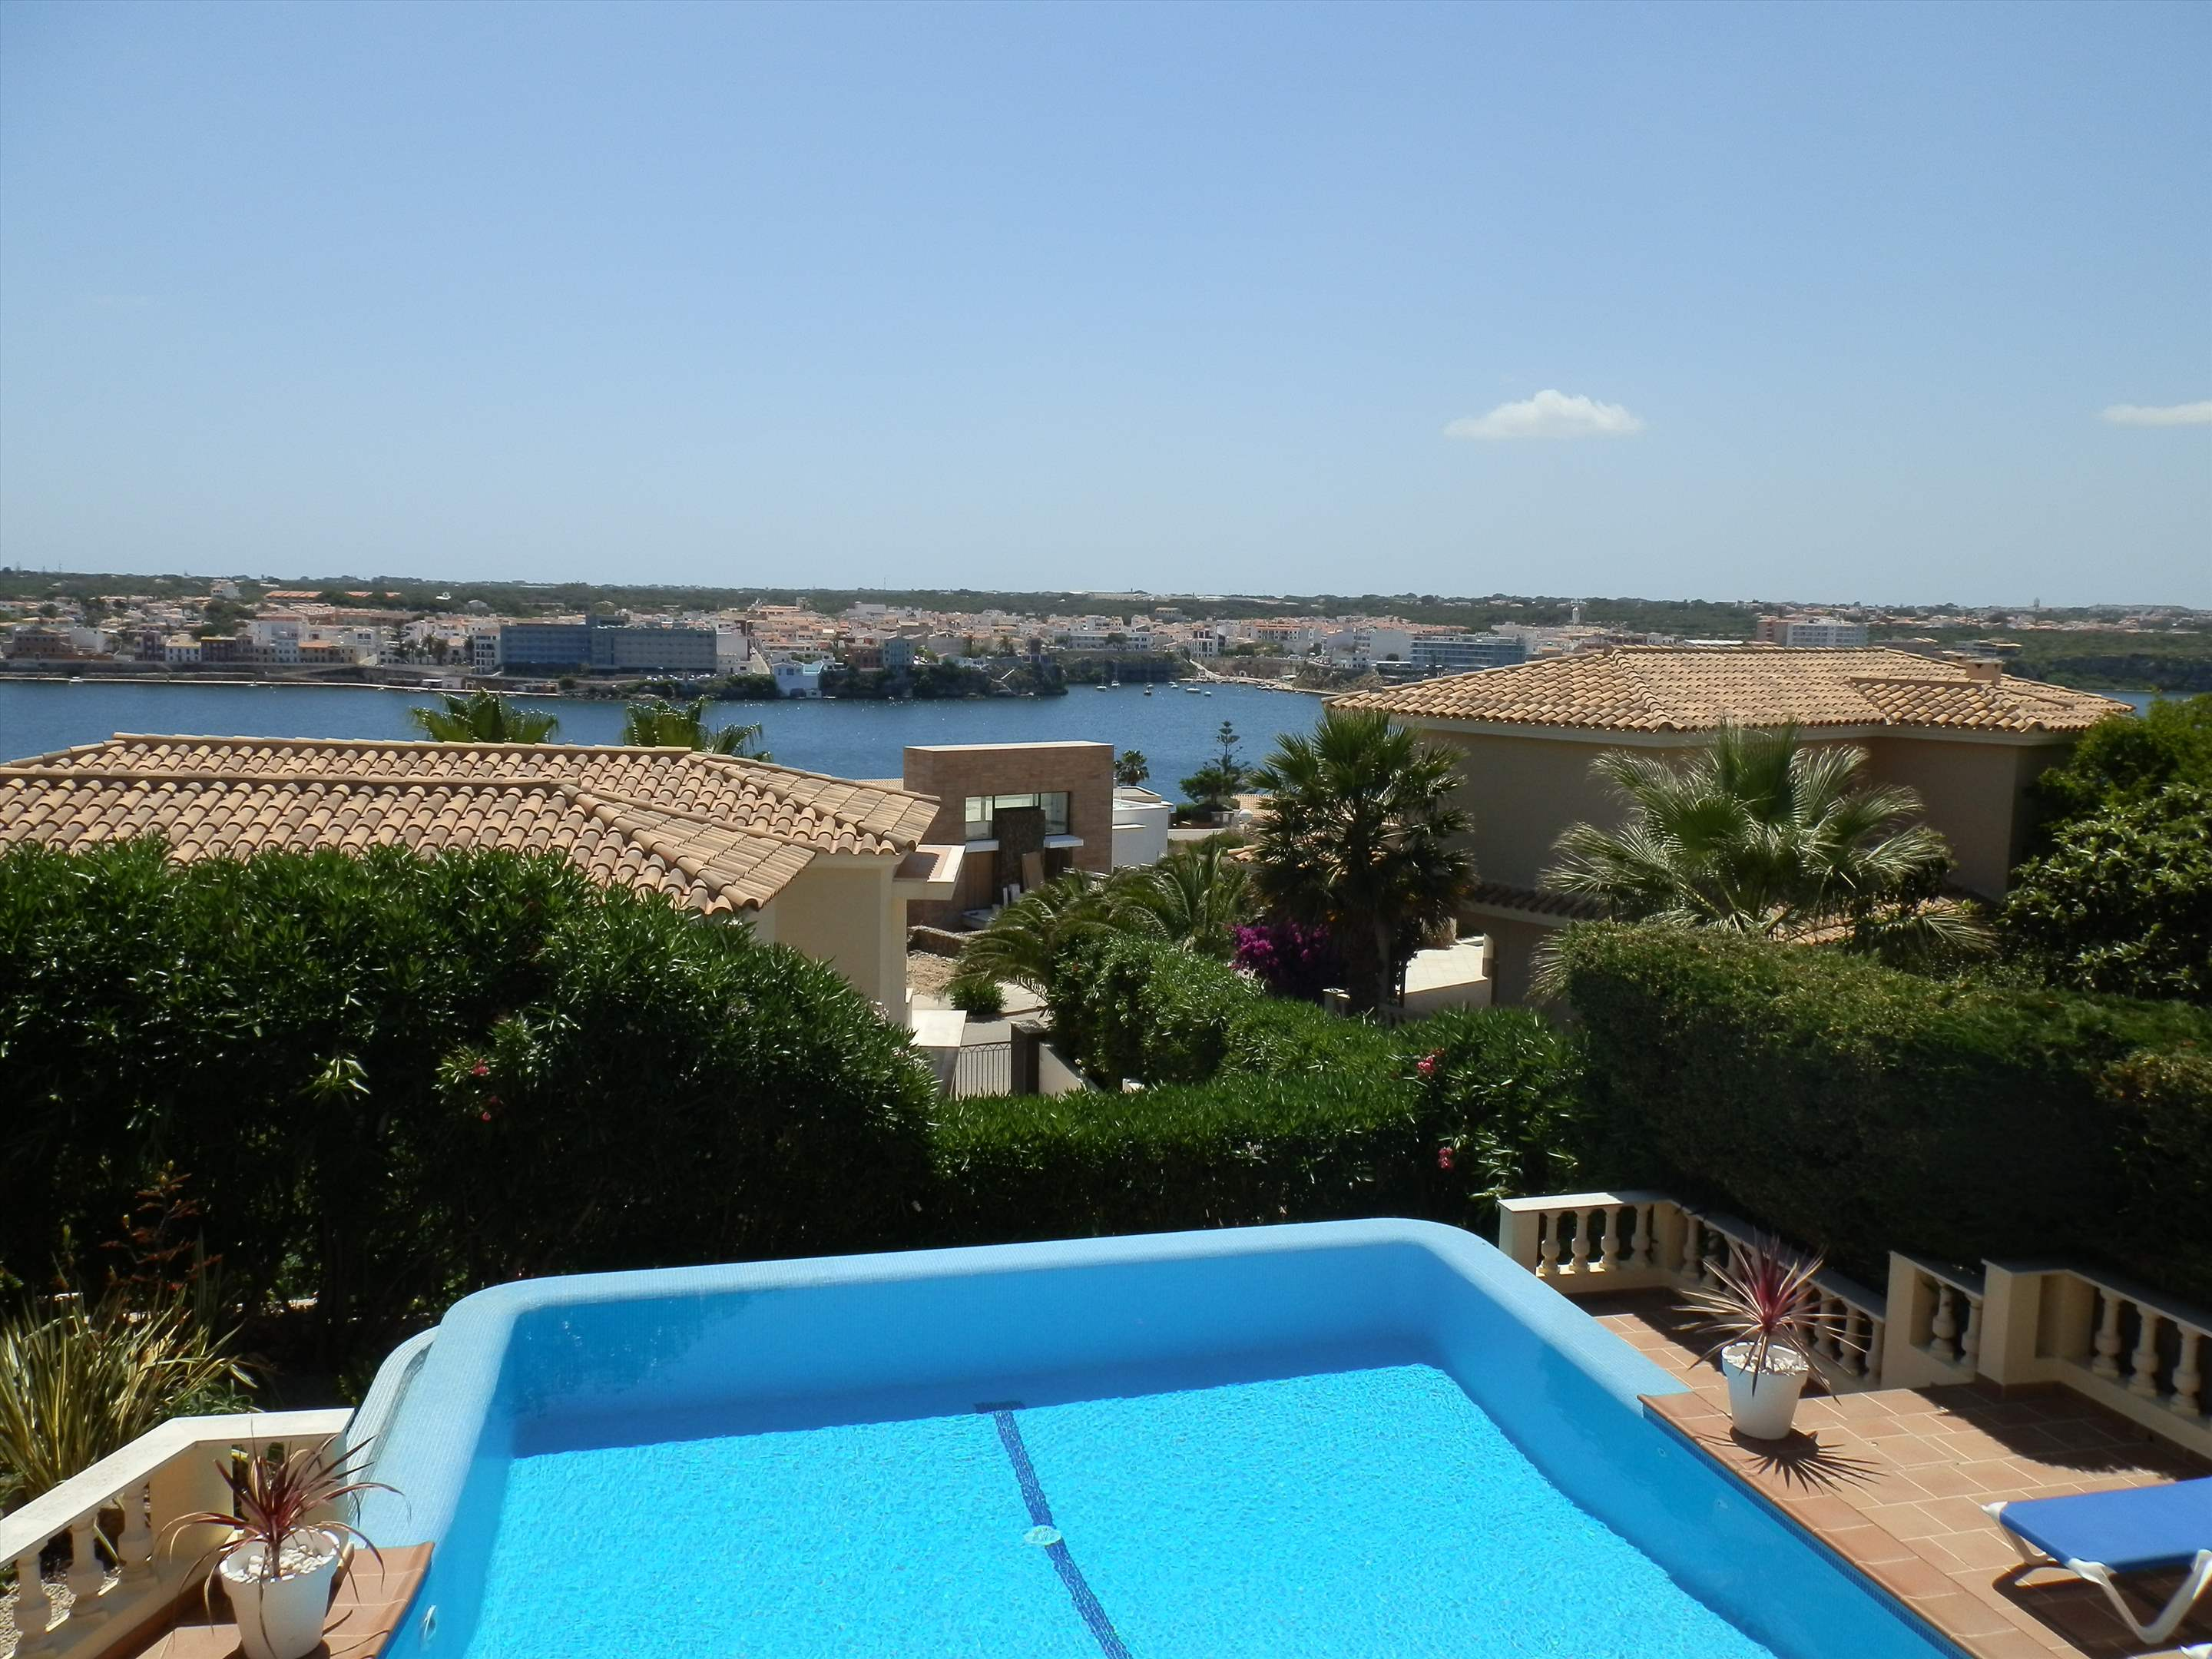 Son De Mar, 5 bedroom villa in Mahon, San Luis & South East, Menorca Photo #13